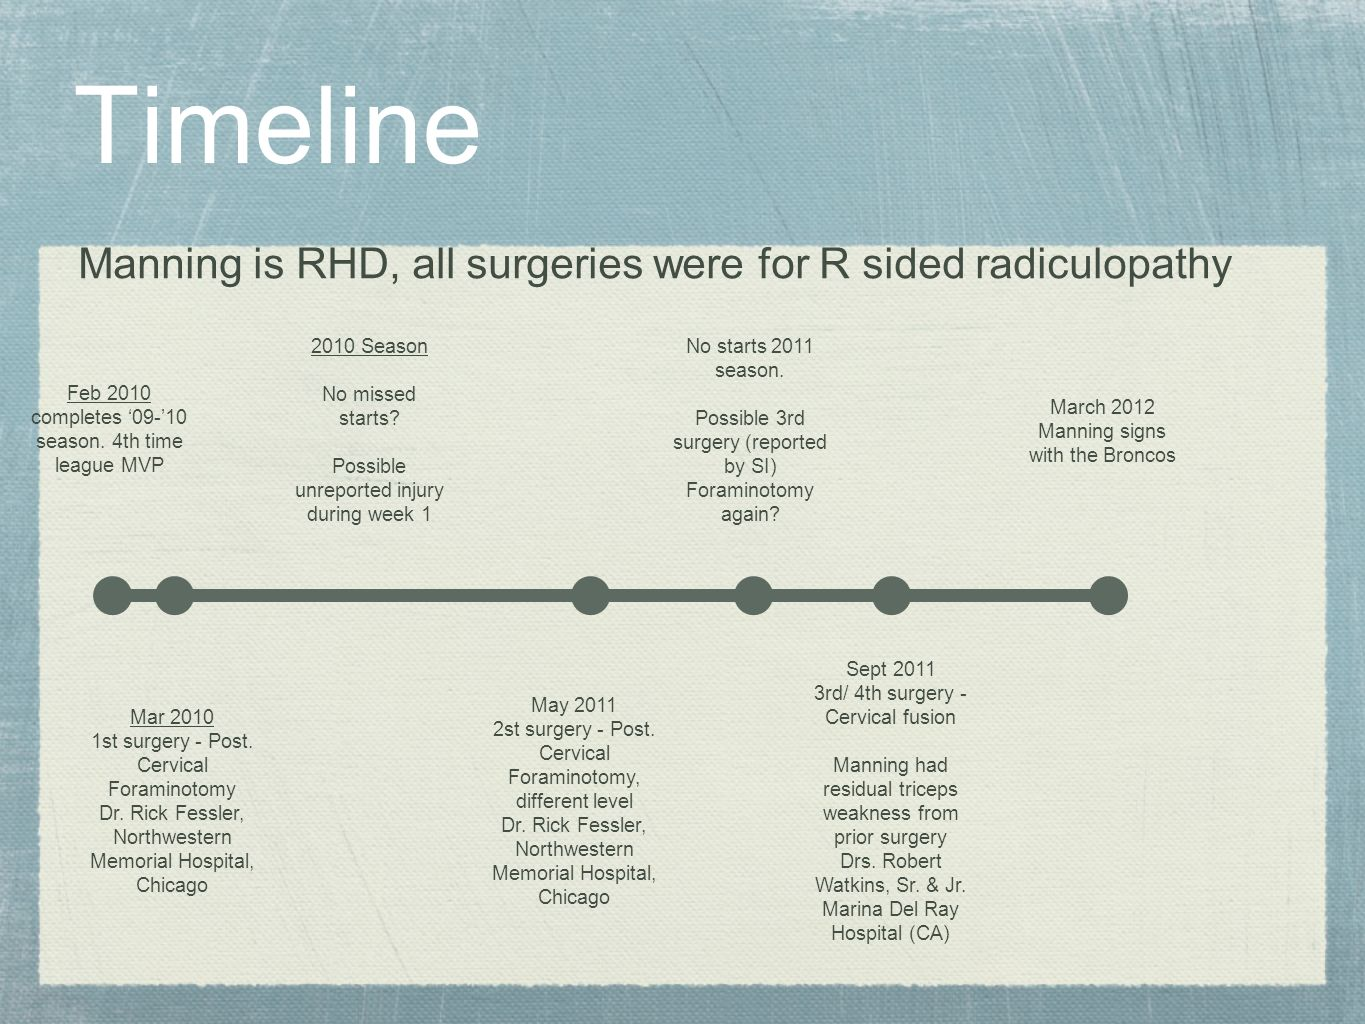 Timeline Manning is RHD, all surgeries were for R sided radiculopathy